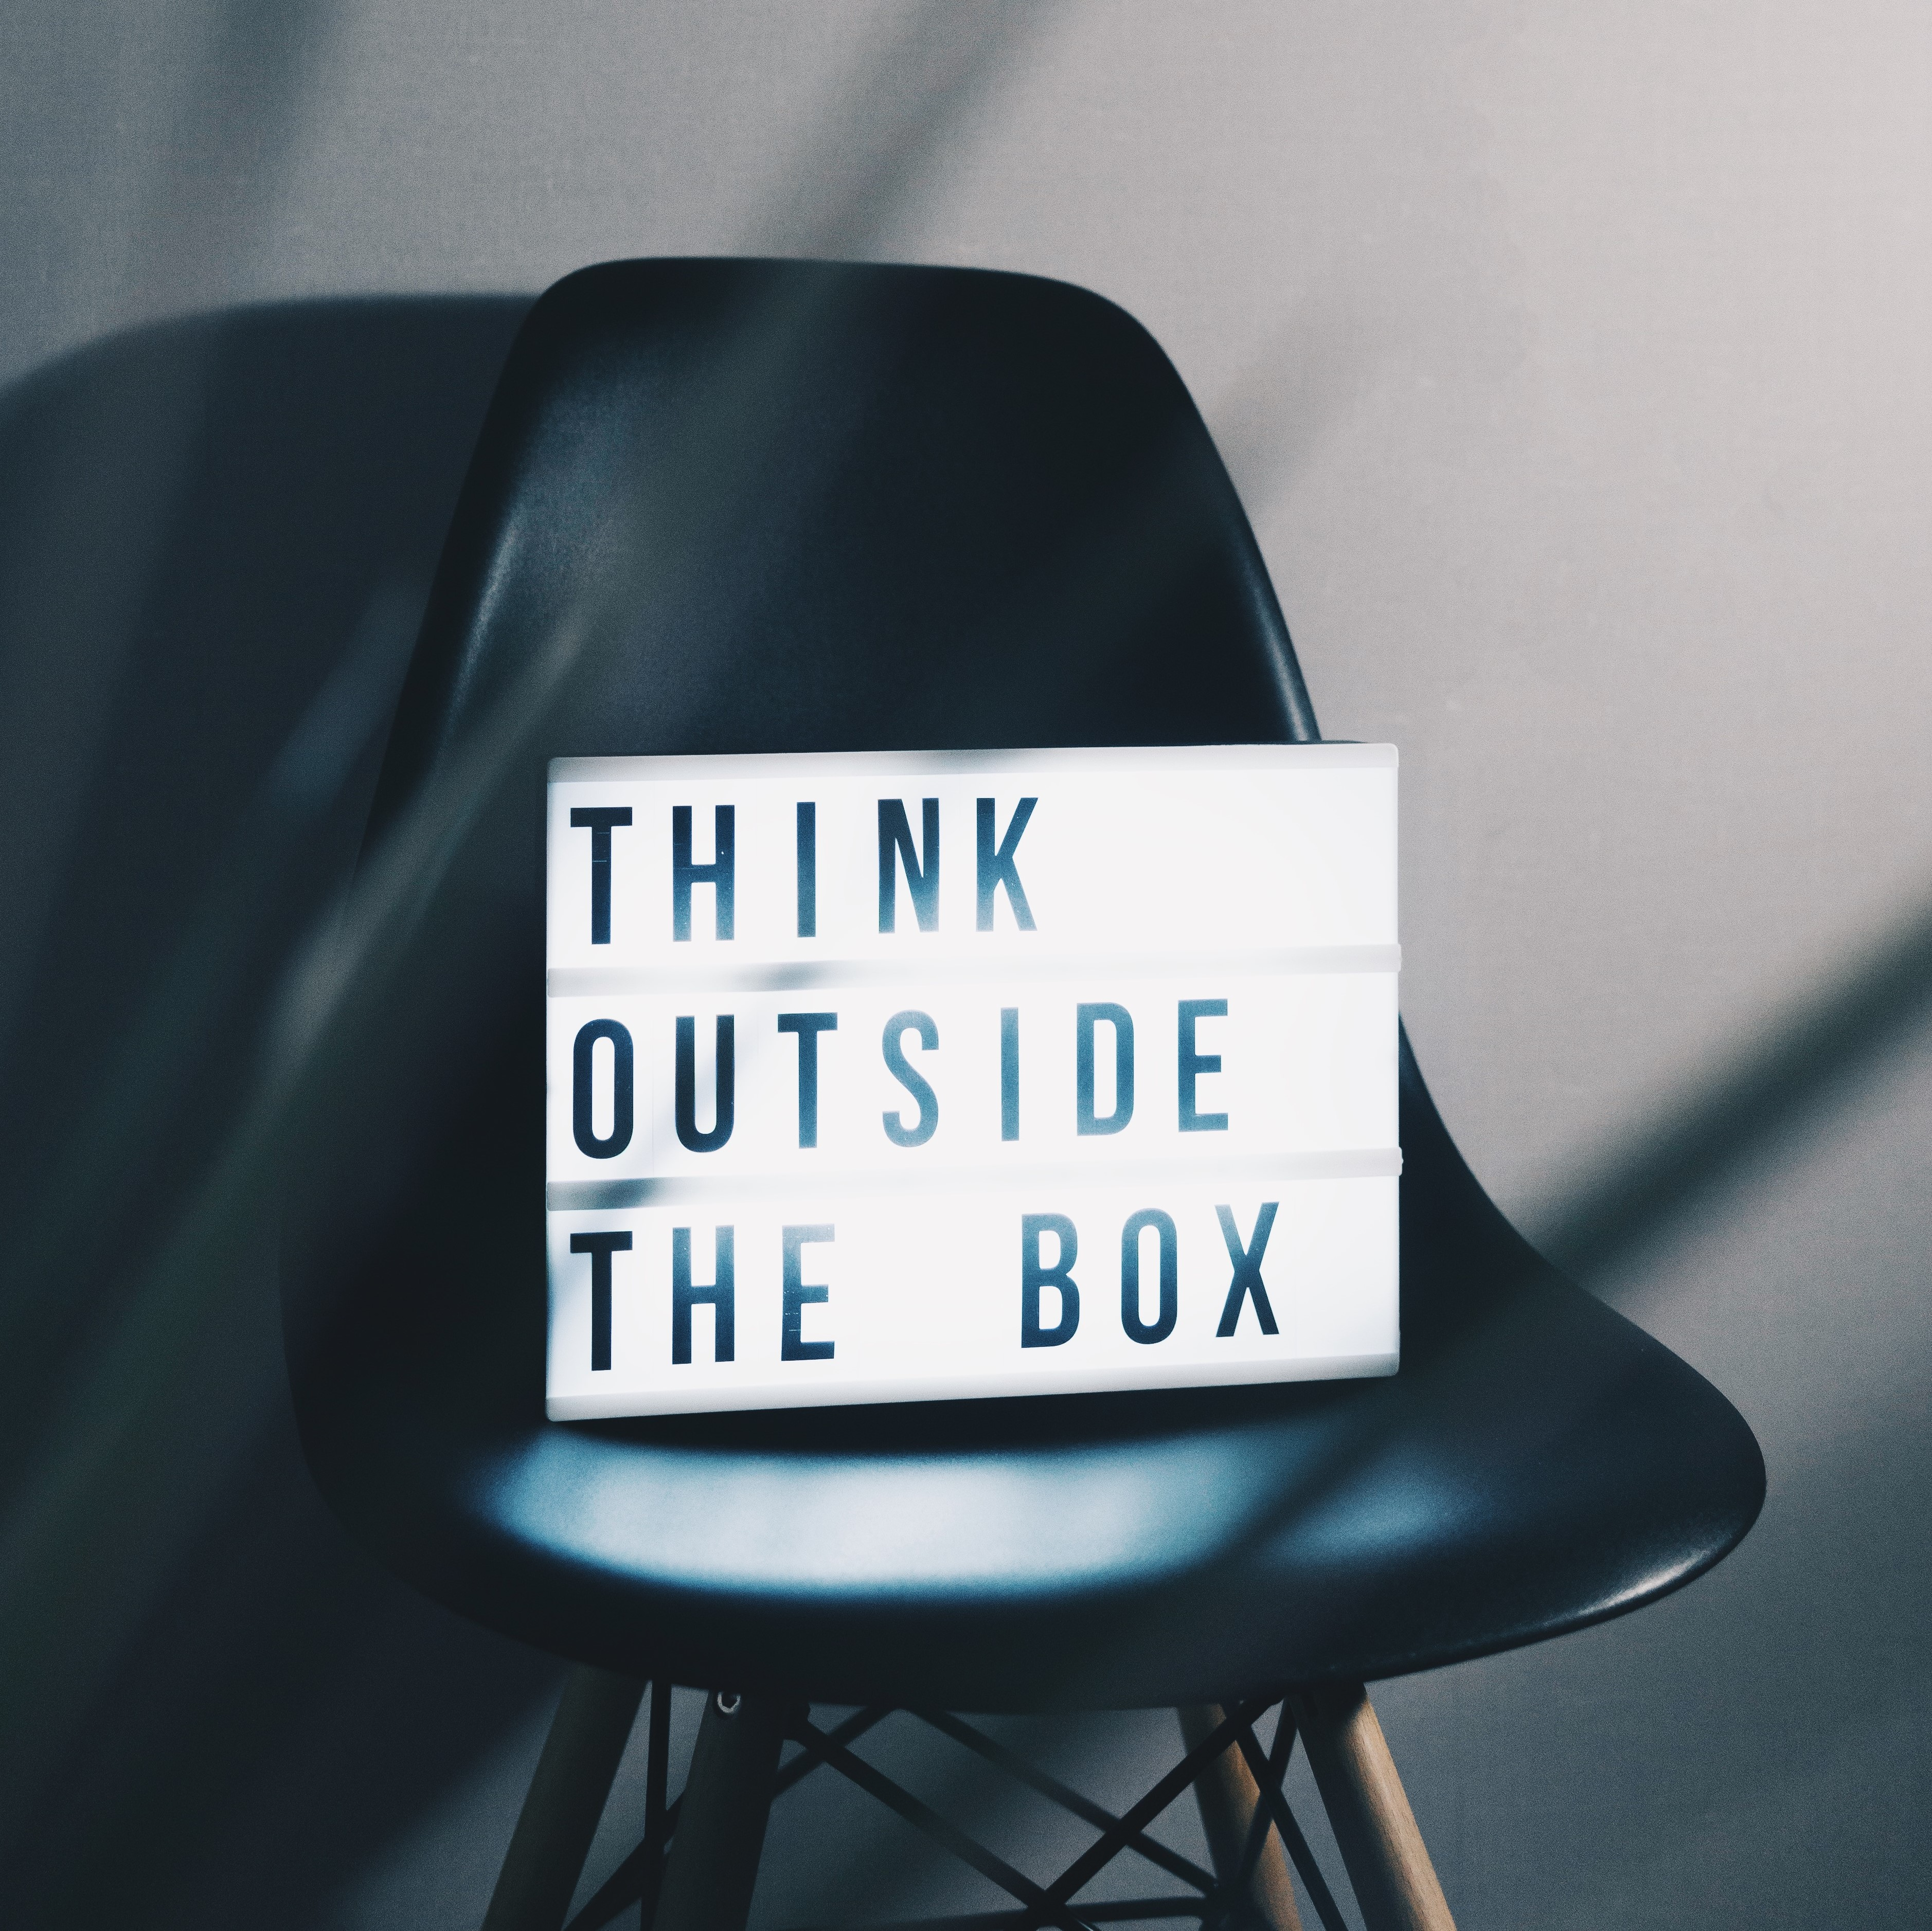 Thin outside the box chair innovative thinking